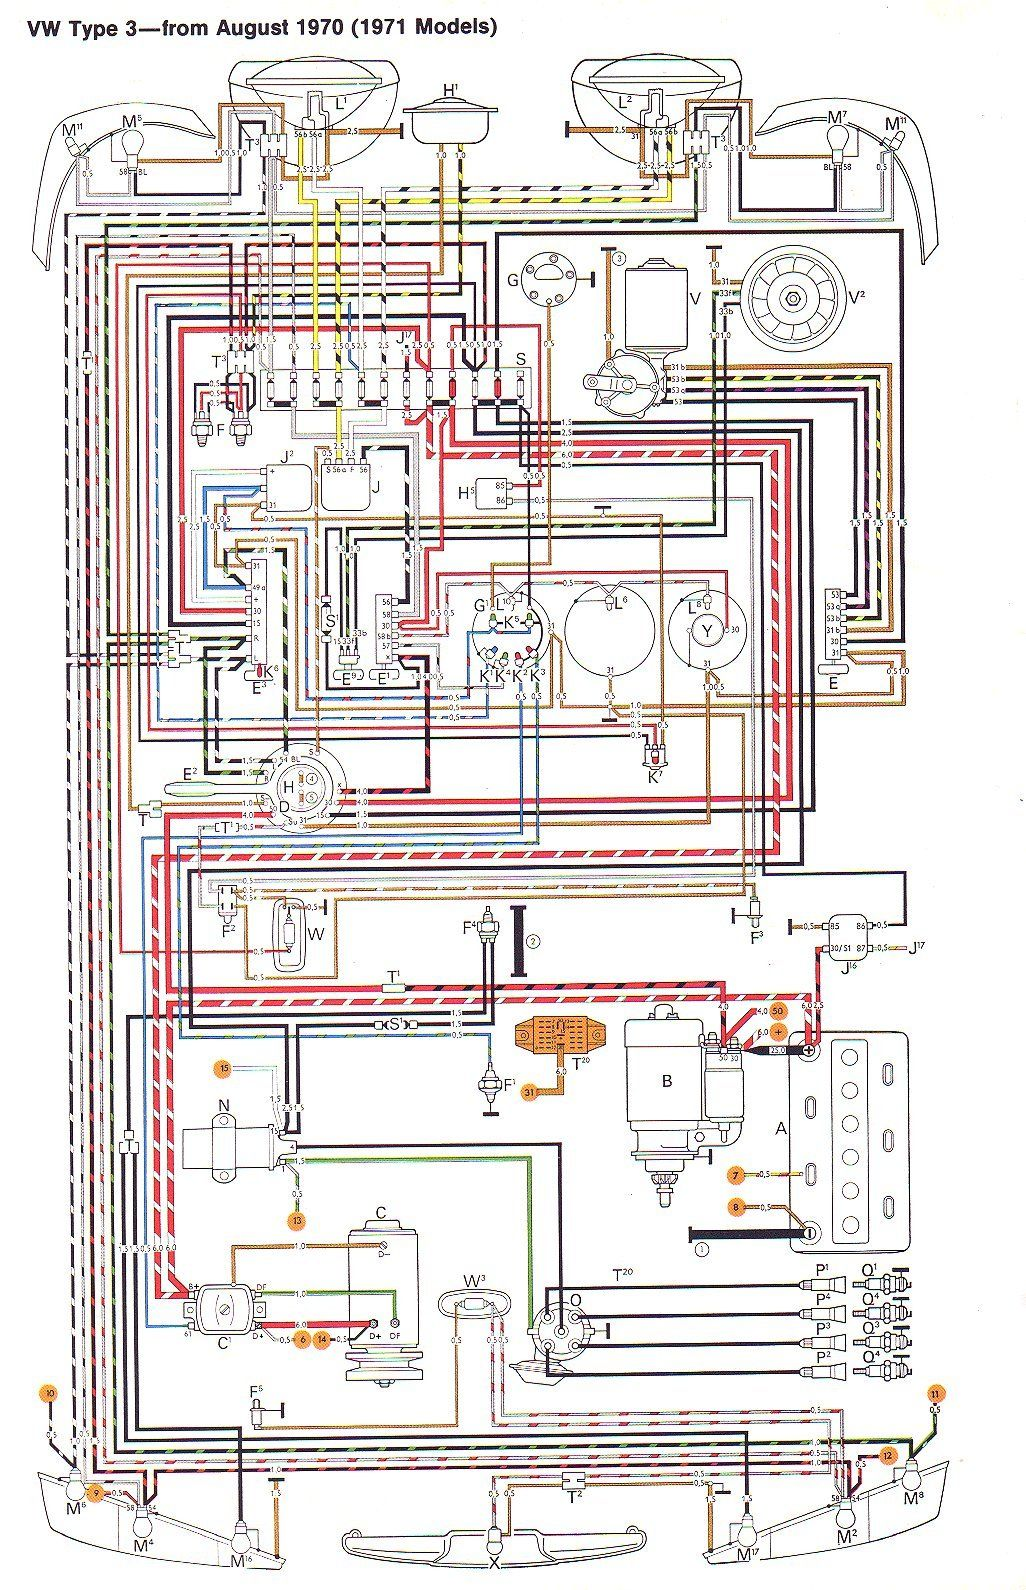 71 vw type 3 wiring diagram